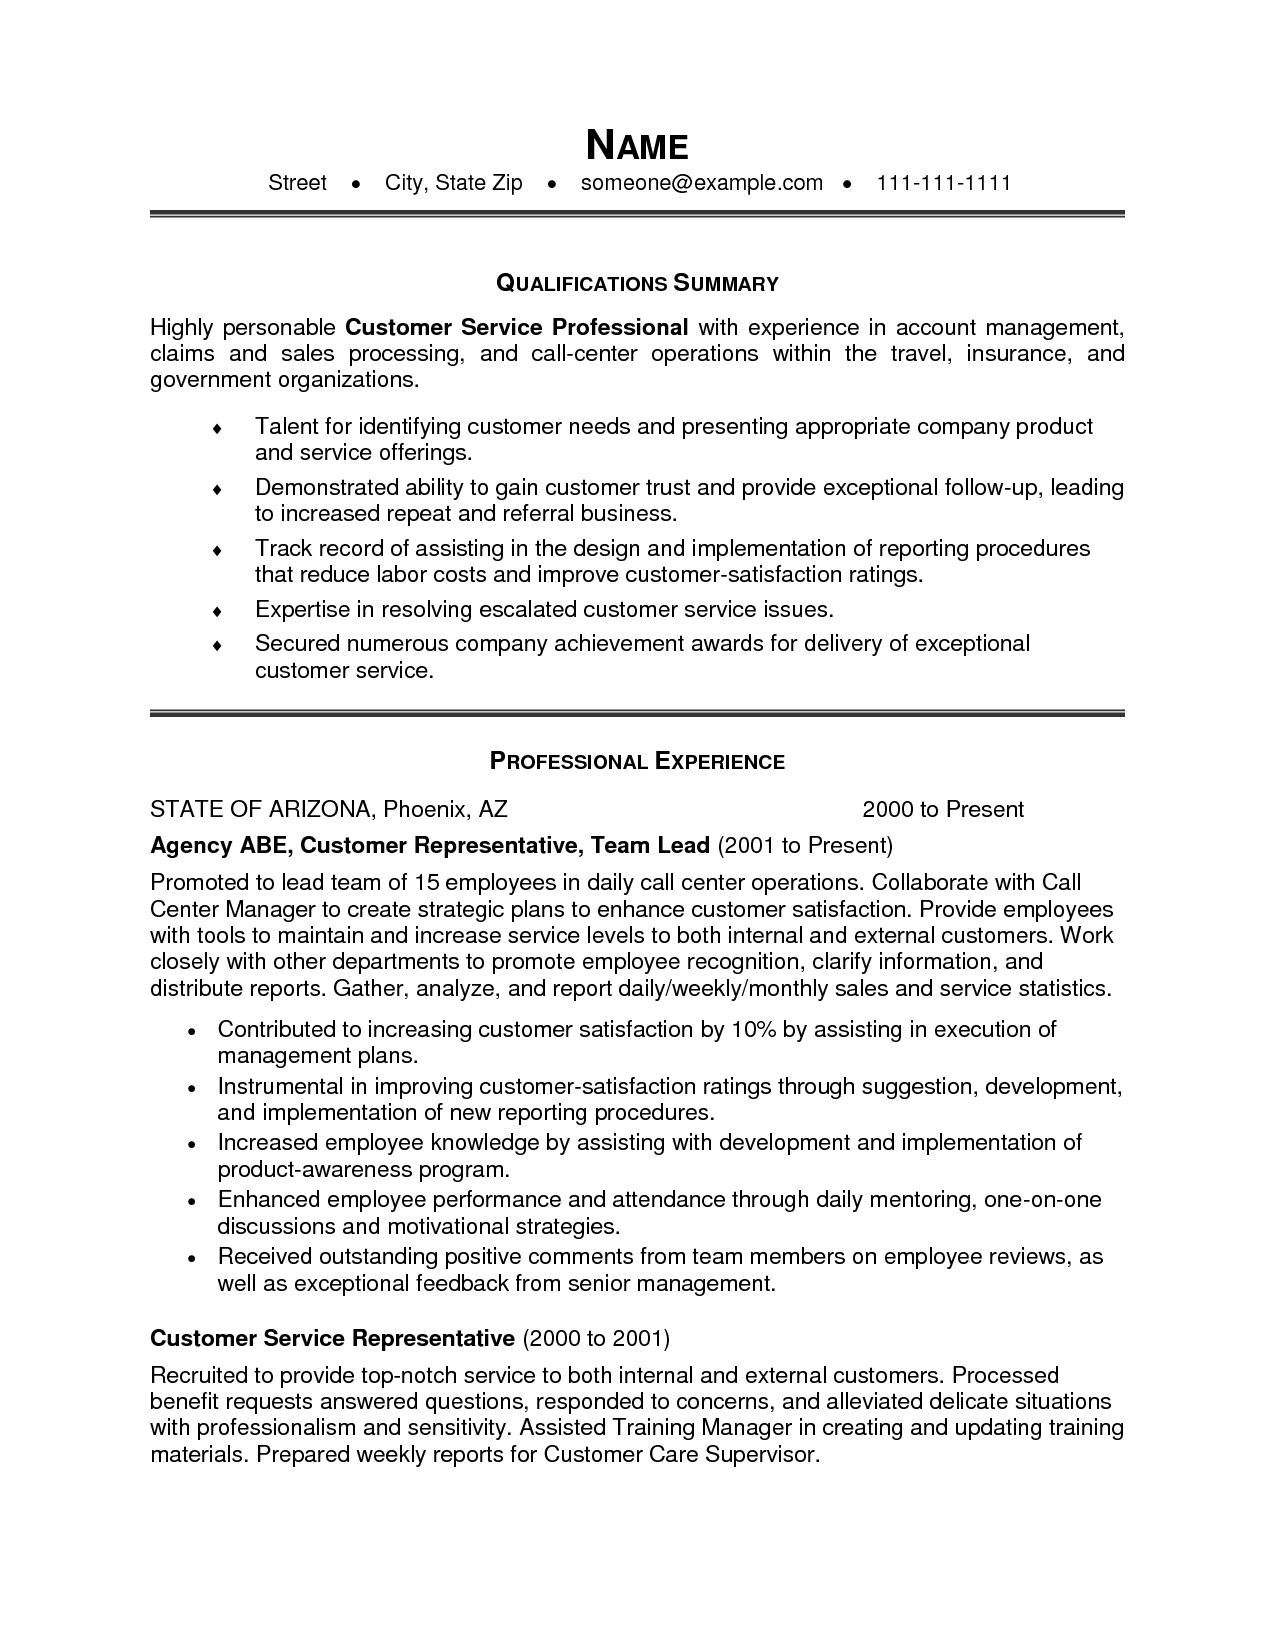 Example Resume Summary Customer Service Resume Summary Examples Resume Summary Examples